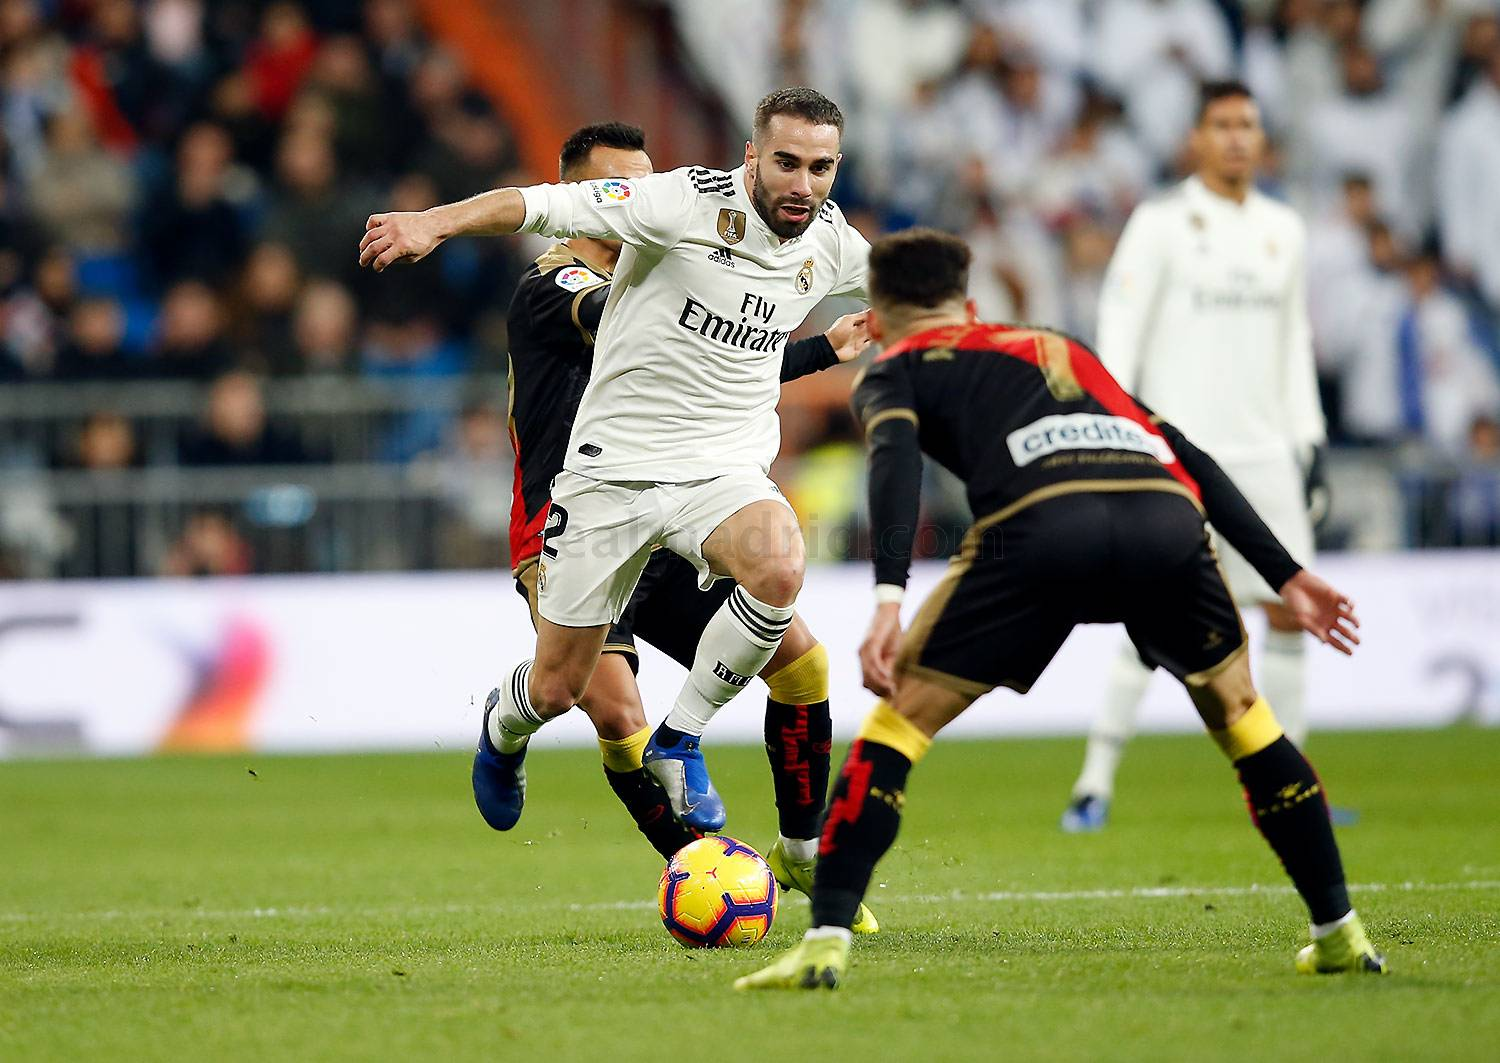 Real Madrid - Real Madrid - Rayo Vallecano - 15-12-2018